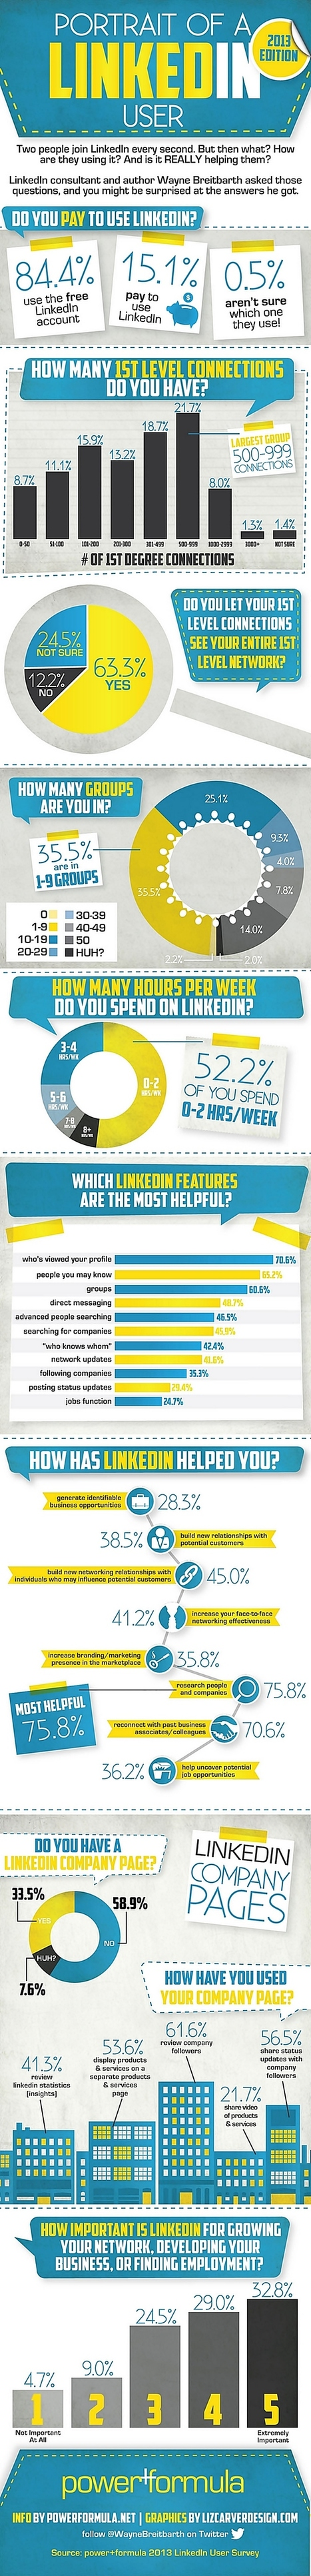 The Portrait of a LinkedIn User in 2013 | Infographic | Social Buzz | Scoop.it